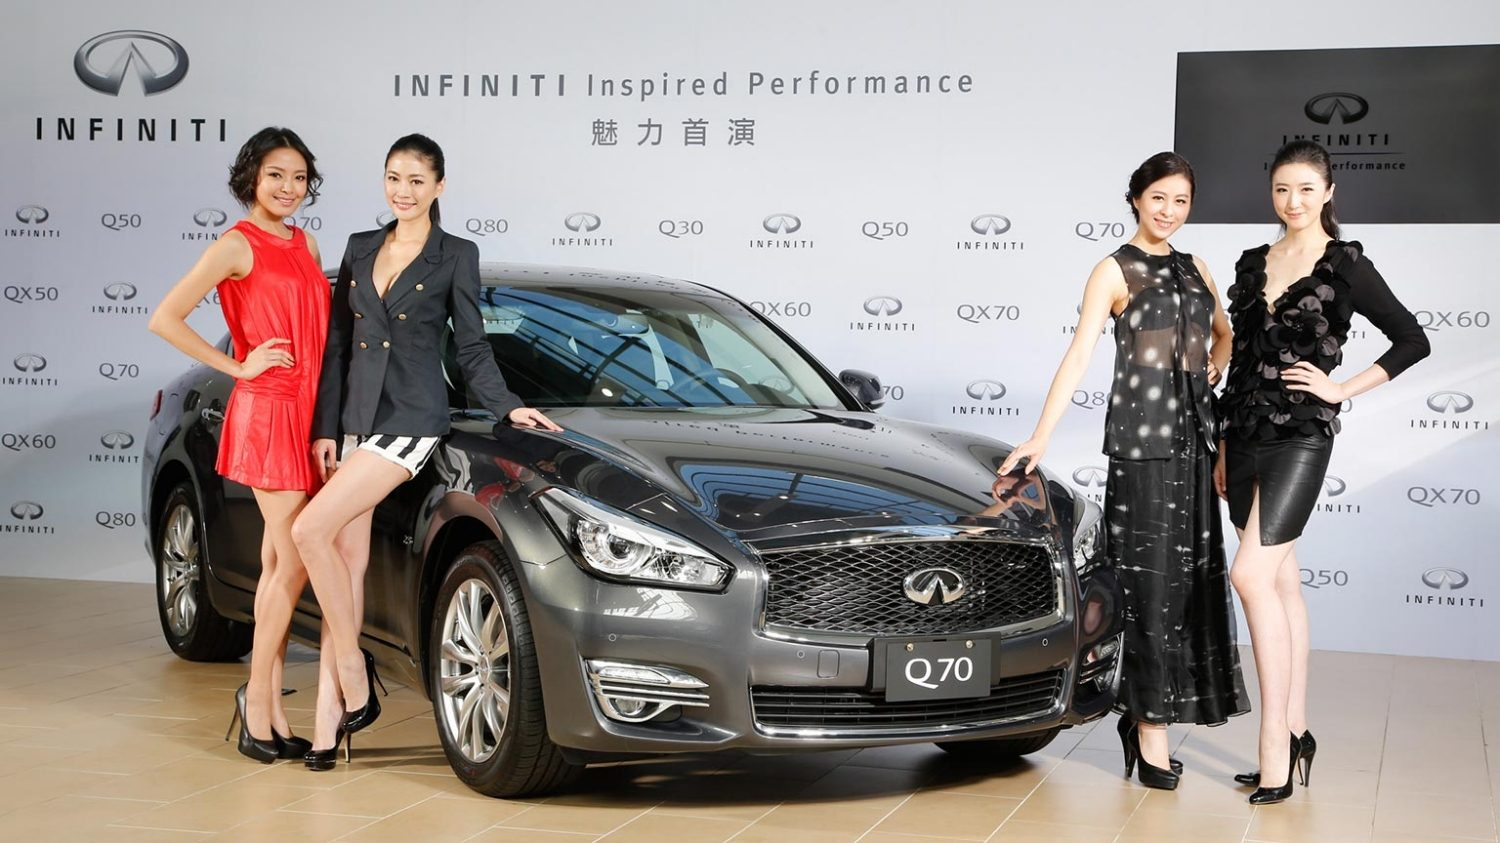 2016世界新車大展INFINITI Inspired Performance名模魅力首演